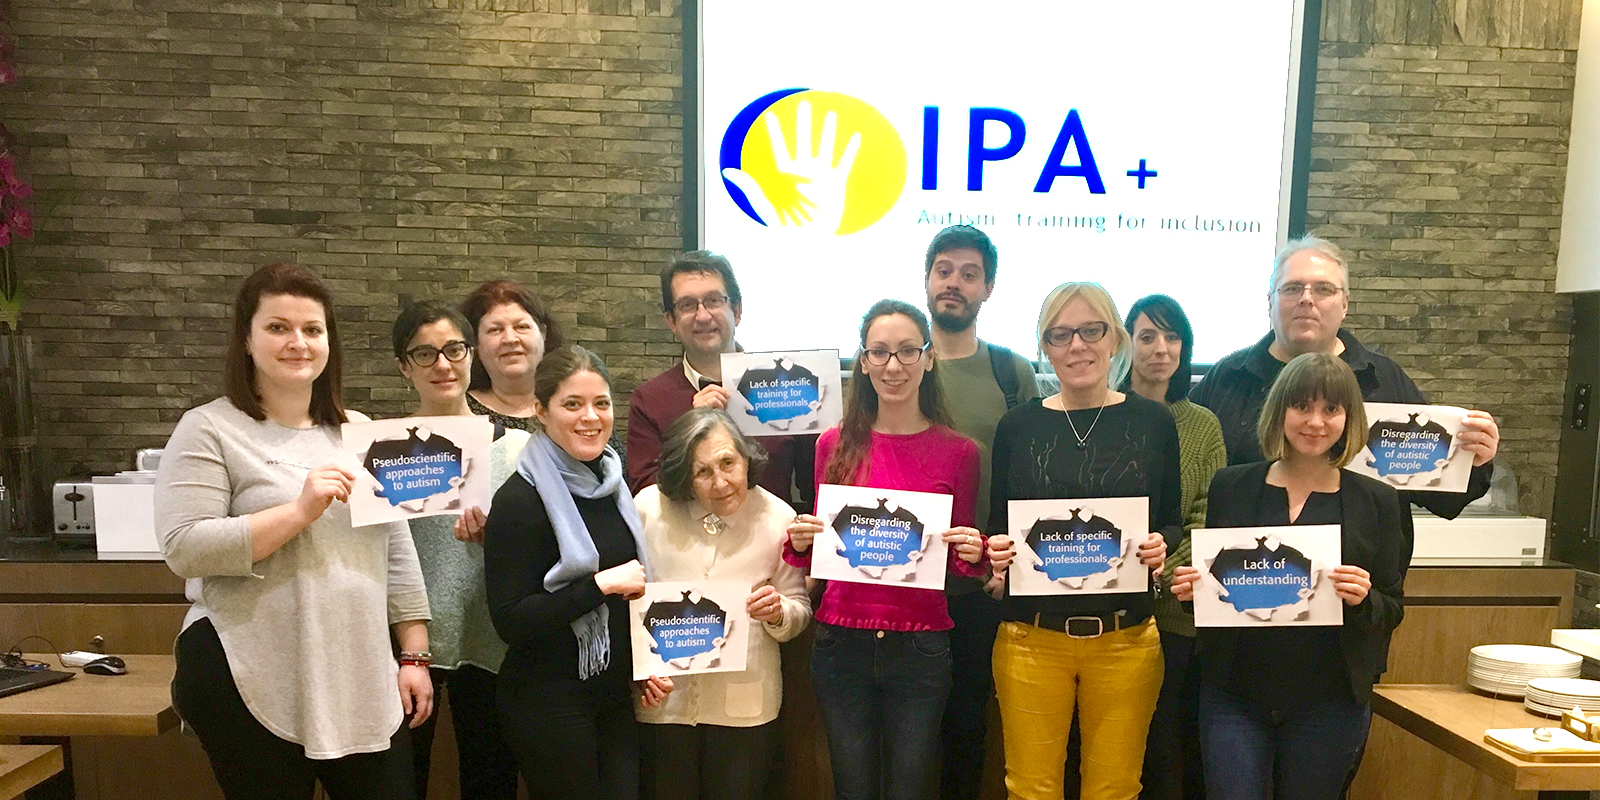 IPA+ partners break barriers together for autism to build a barrier-free society for all